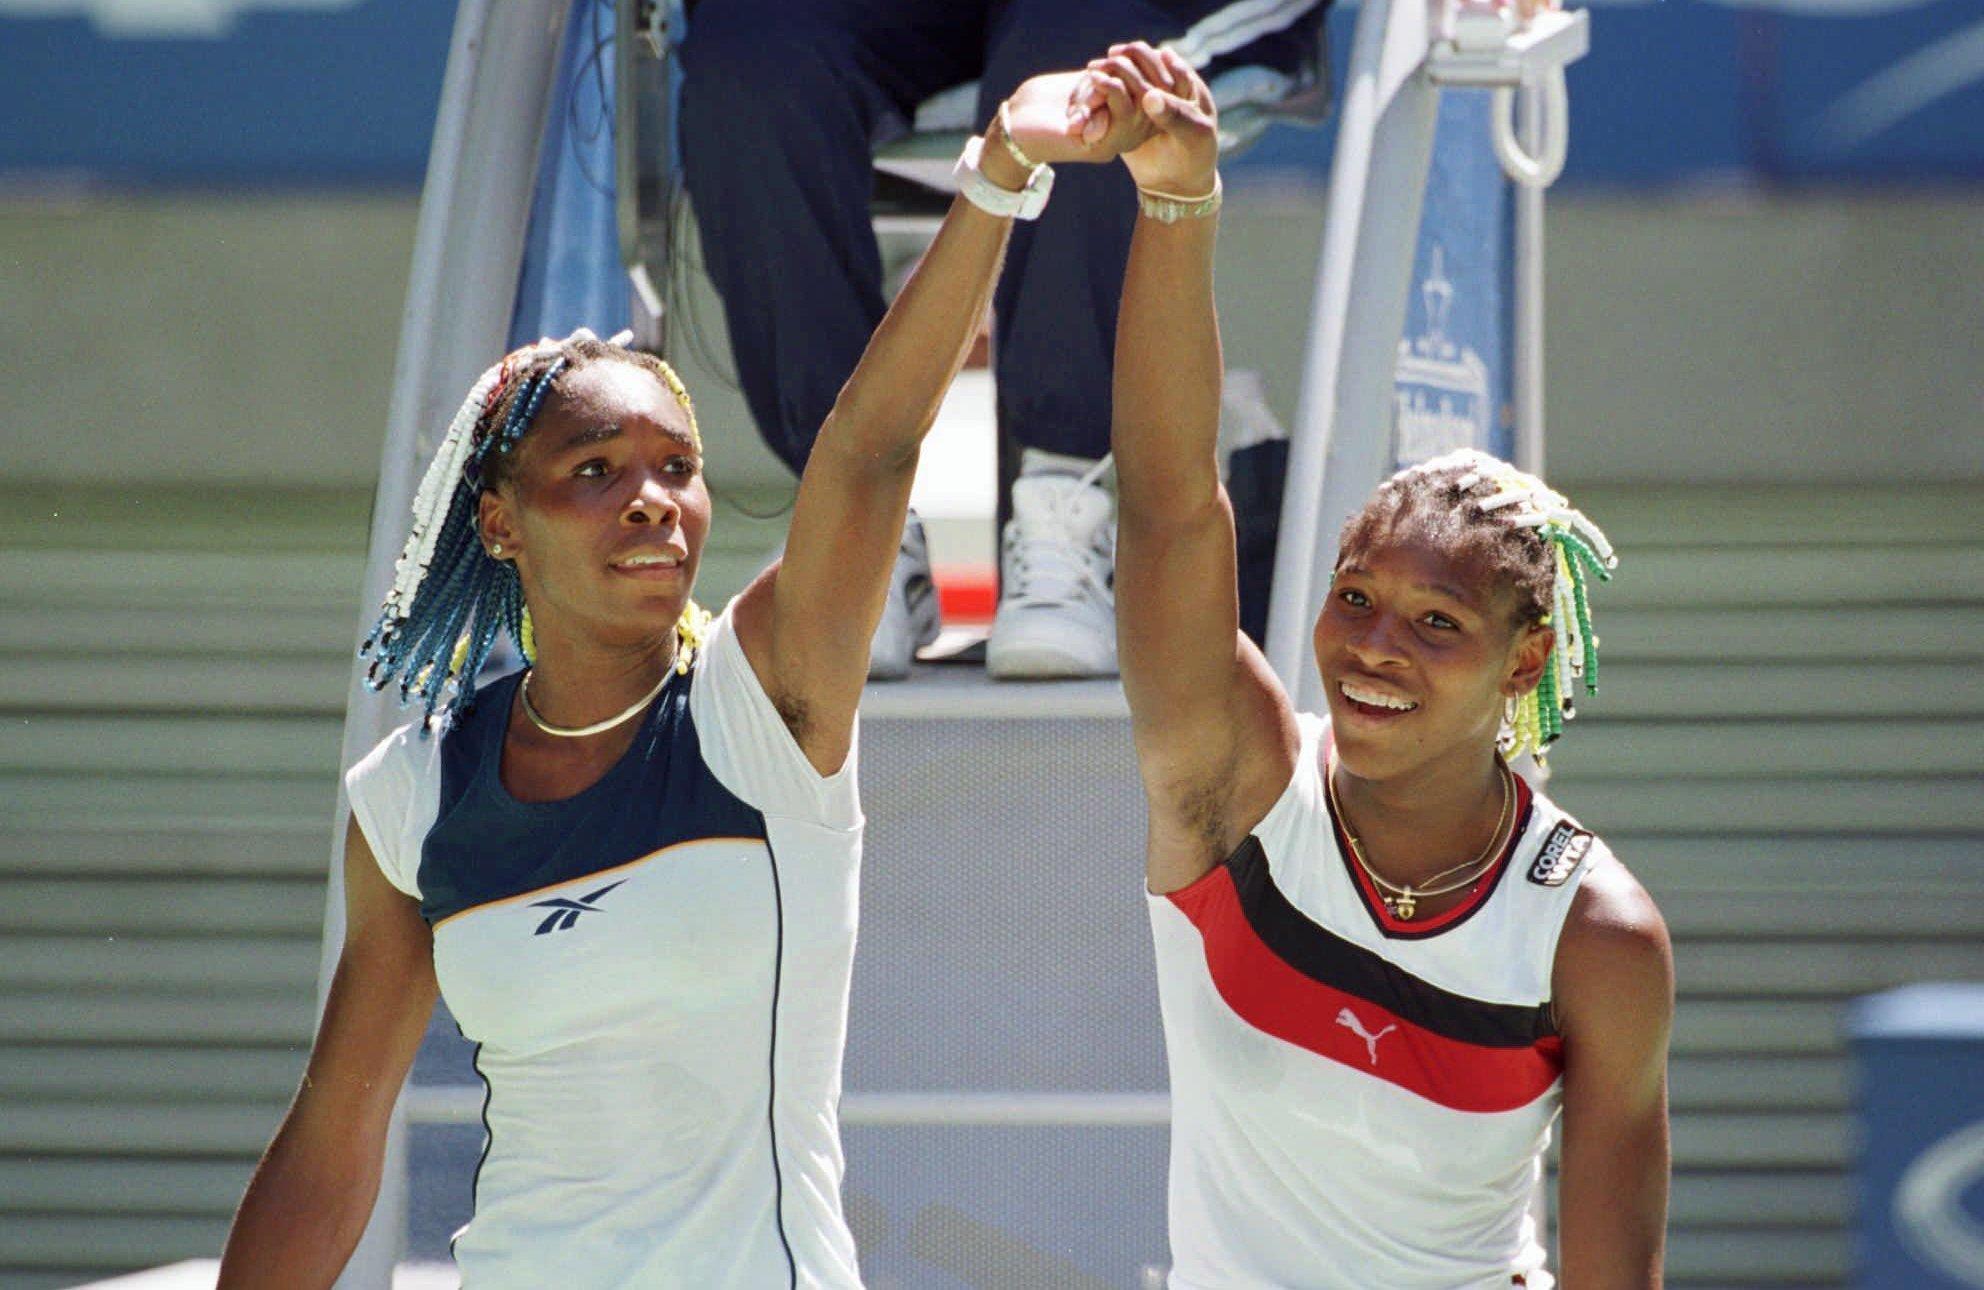 Serena, right, and Venus Williams played each other for the first time on Tour in January 1998 at the Australian Open